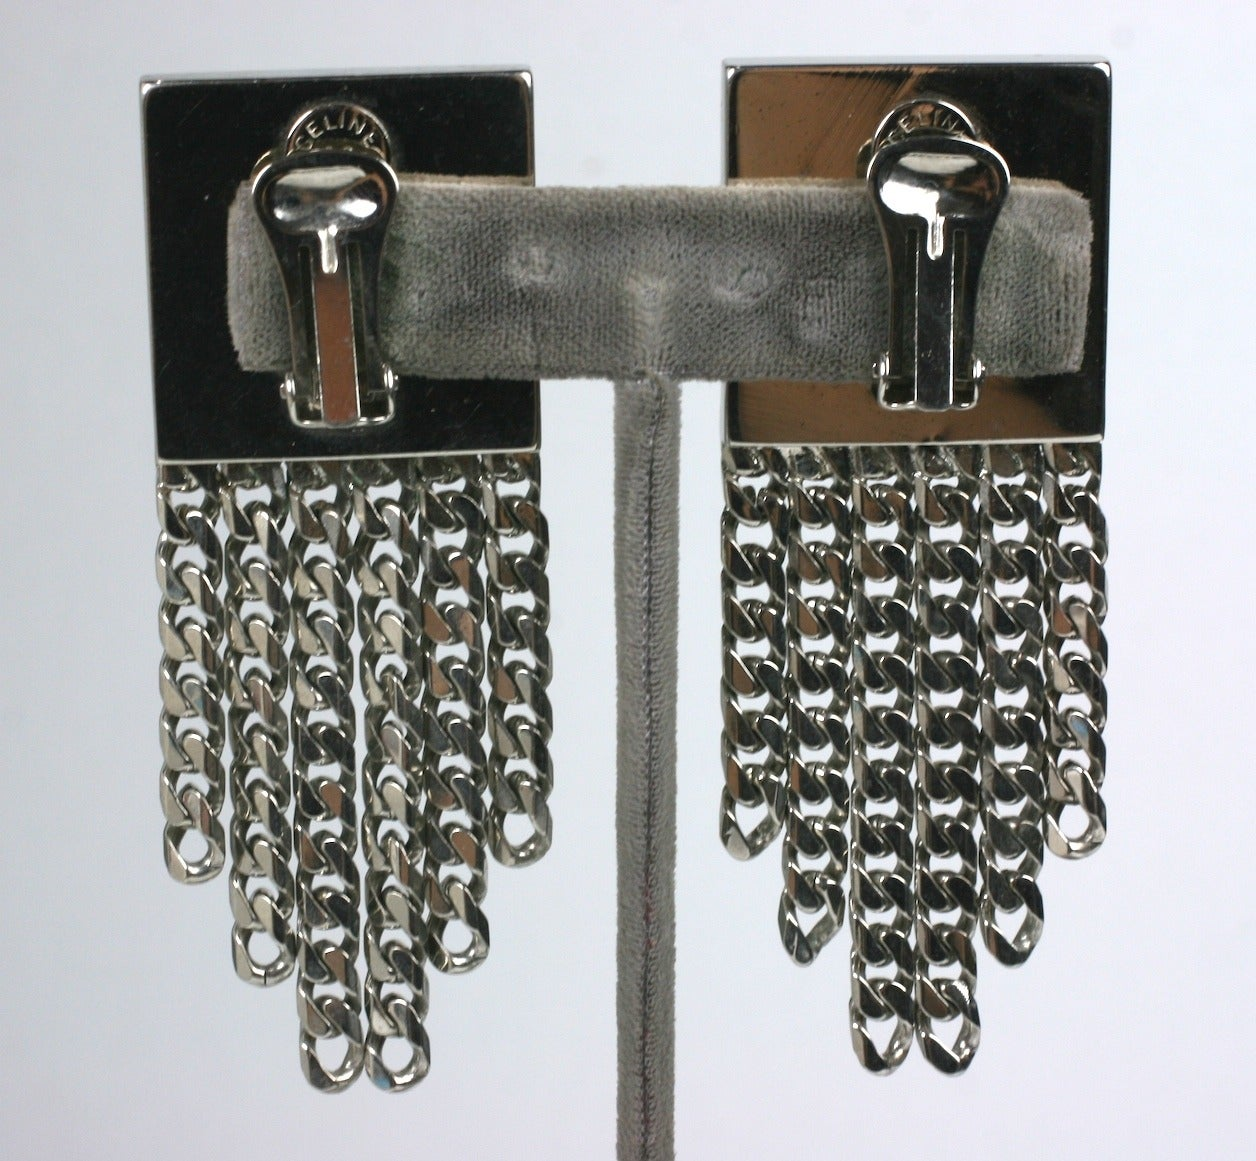 Cool (and large) Celine Silver Chain Door Knocker Earrings with pave rhinestones from the late 1980's with curb chain fringe. Imposing scale and beautifully crafted for Celine in Italy. 1989 France. 3